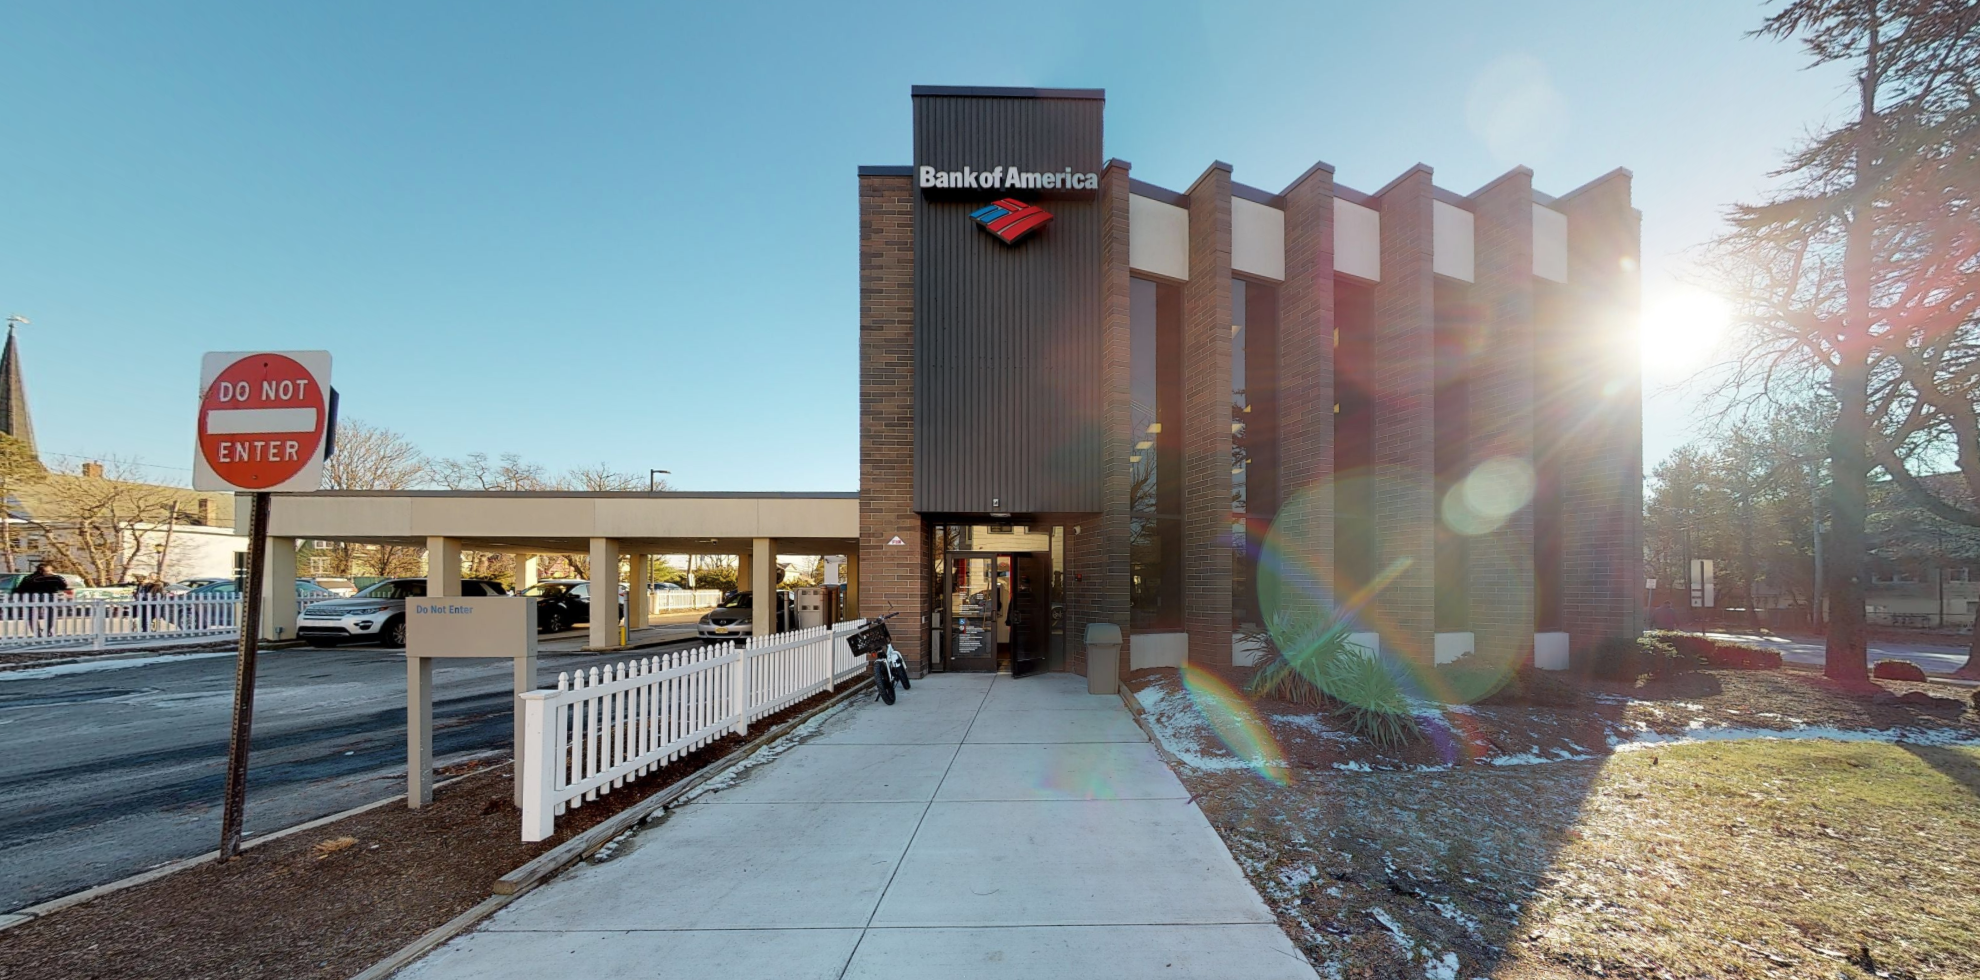 Bank of America financial center with drive-thru ATM | 315 Madison Ave, Lakewood, NJ 08701